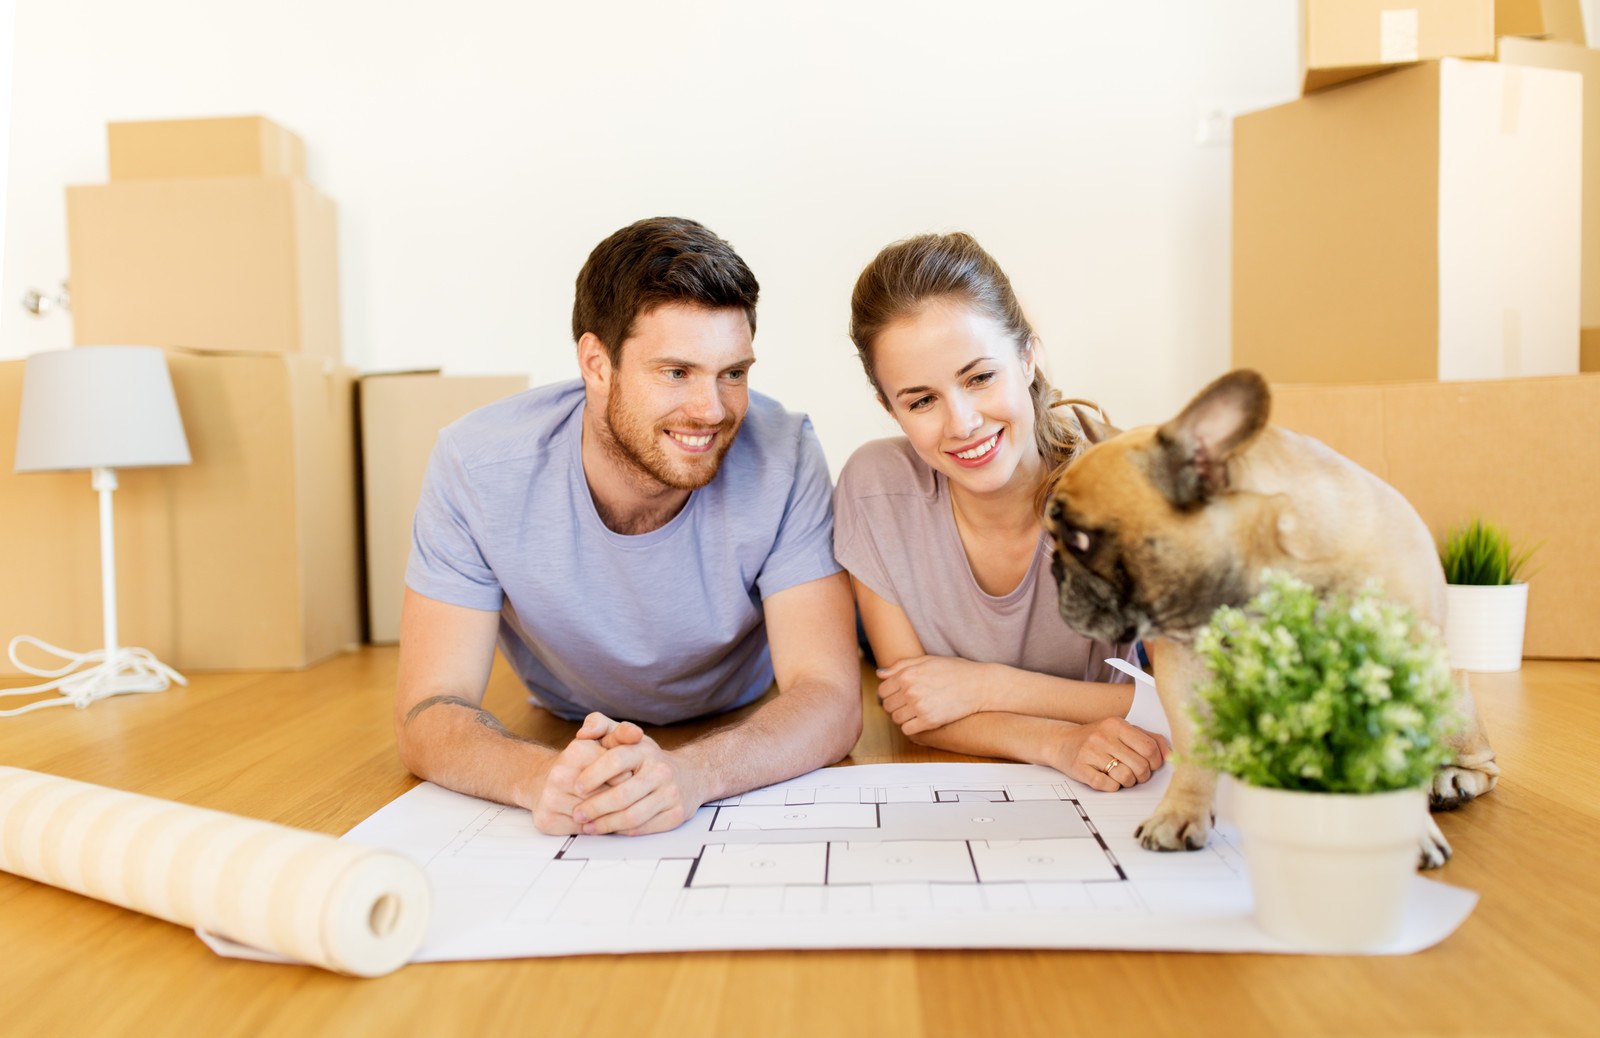 A man and women smiling at their dog while they work on their plans for a new home